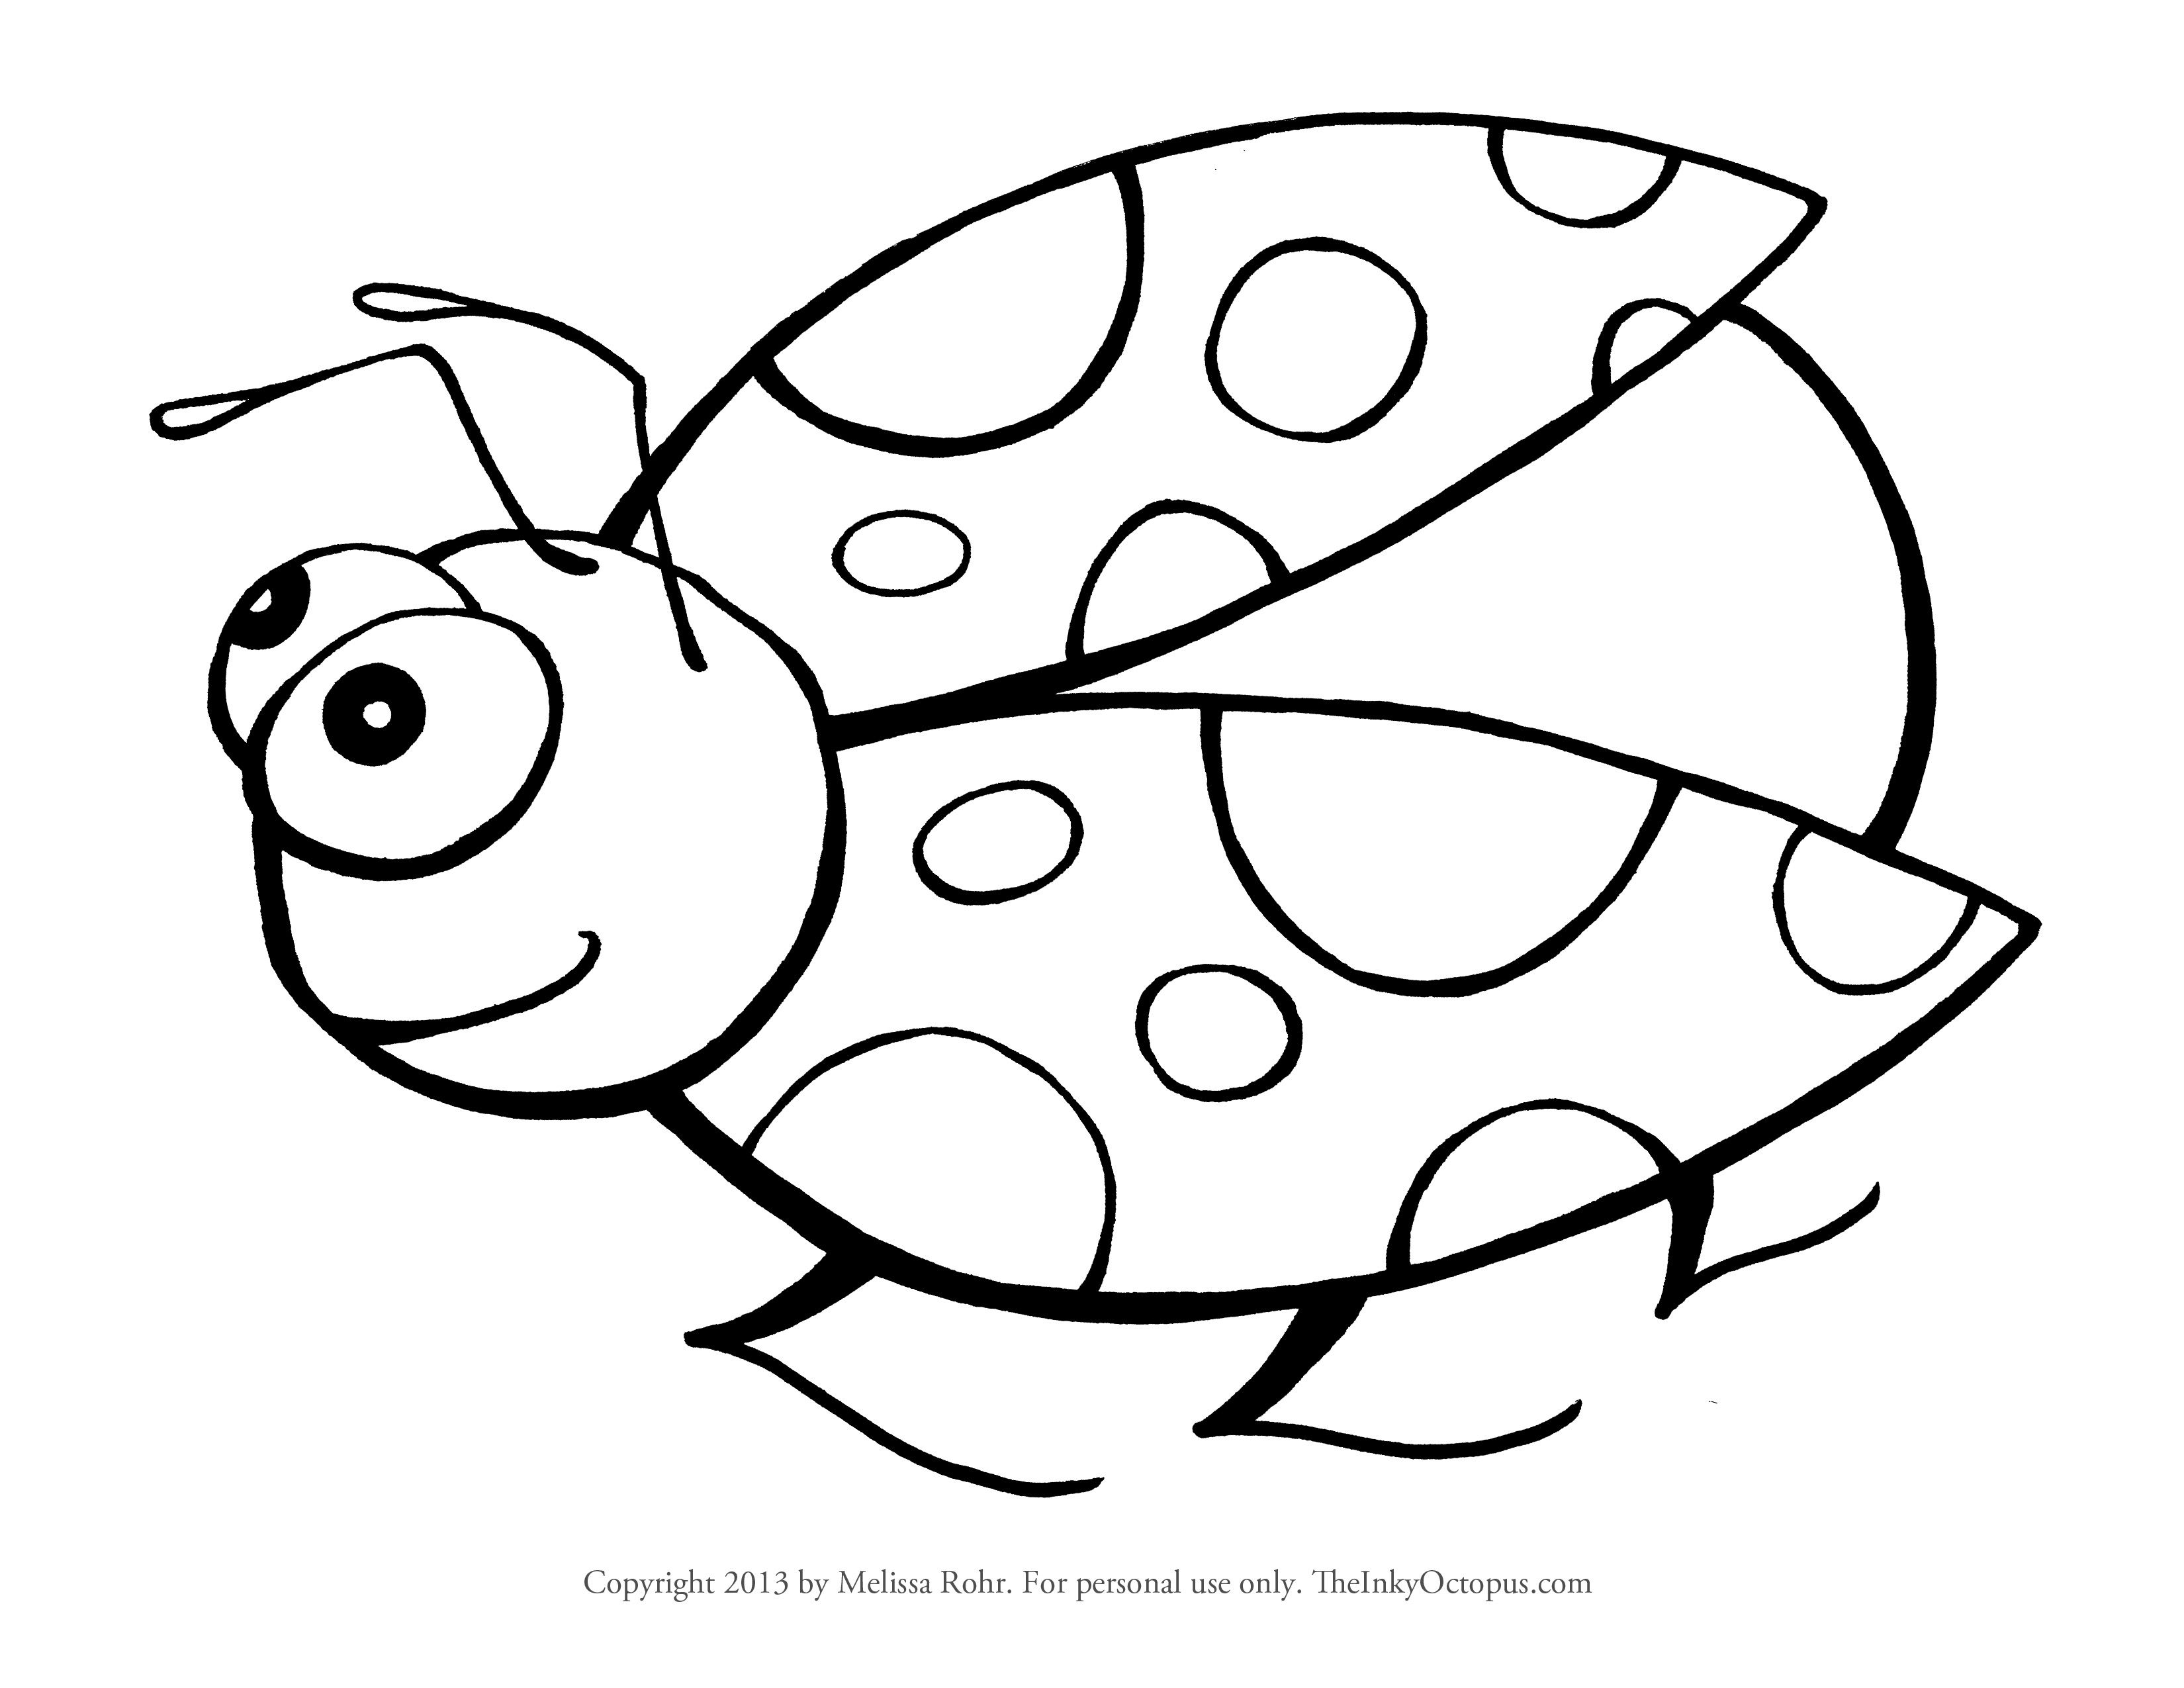 ladybug coloring printable bug coloring pages for kids cool2bkids ladybug coloring